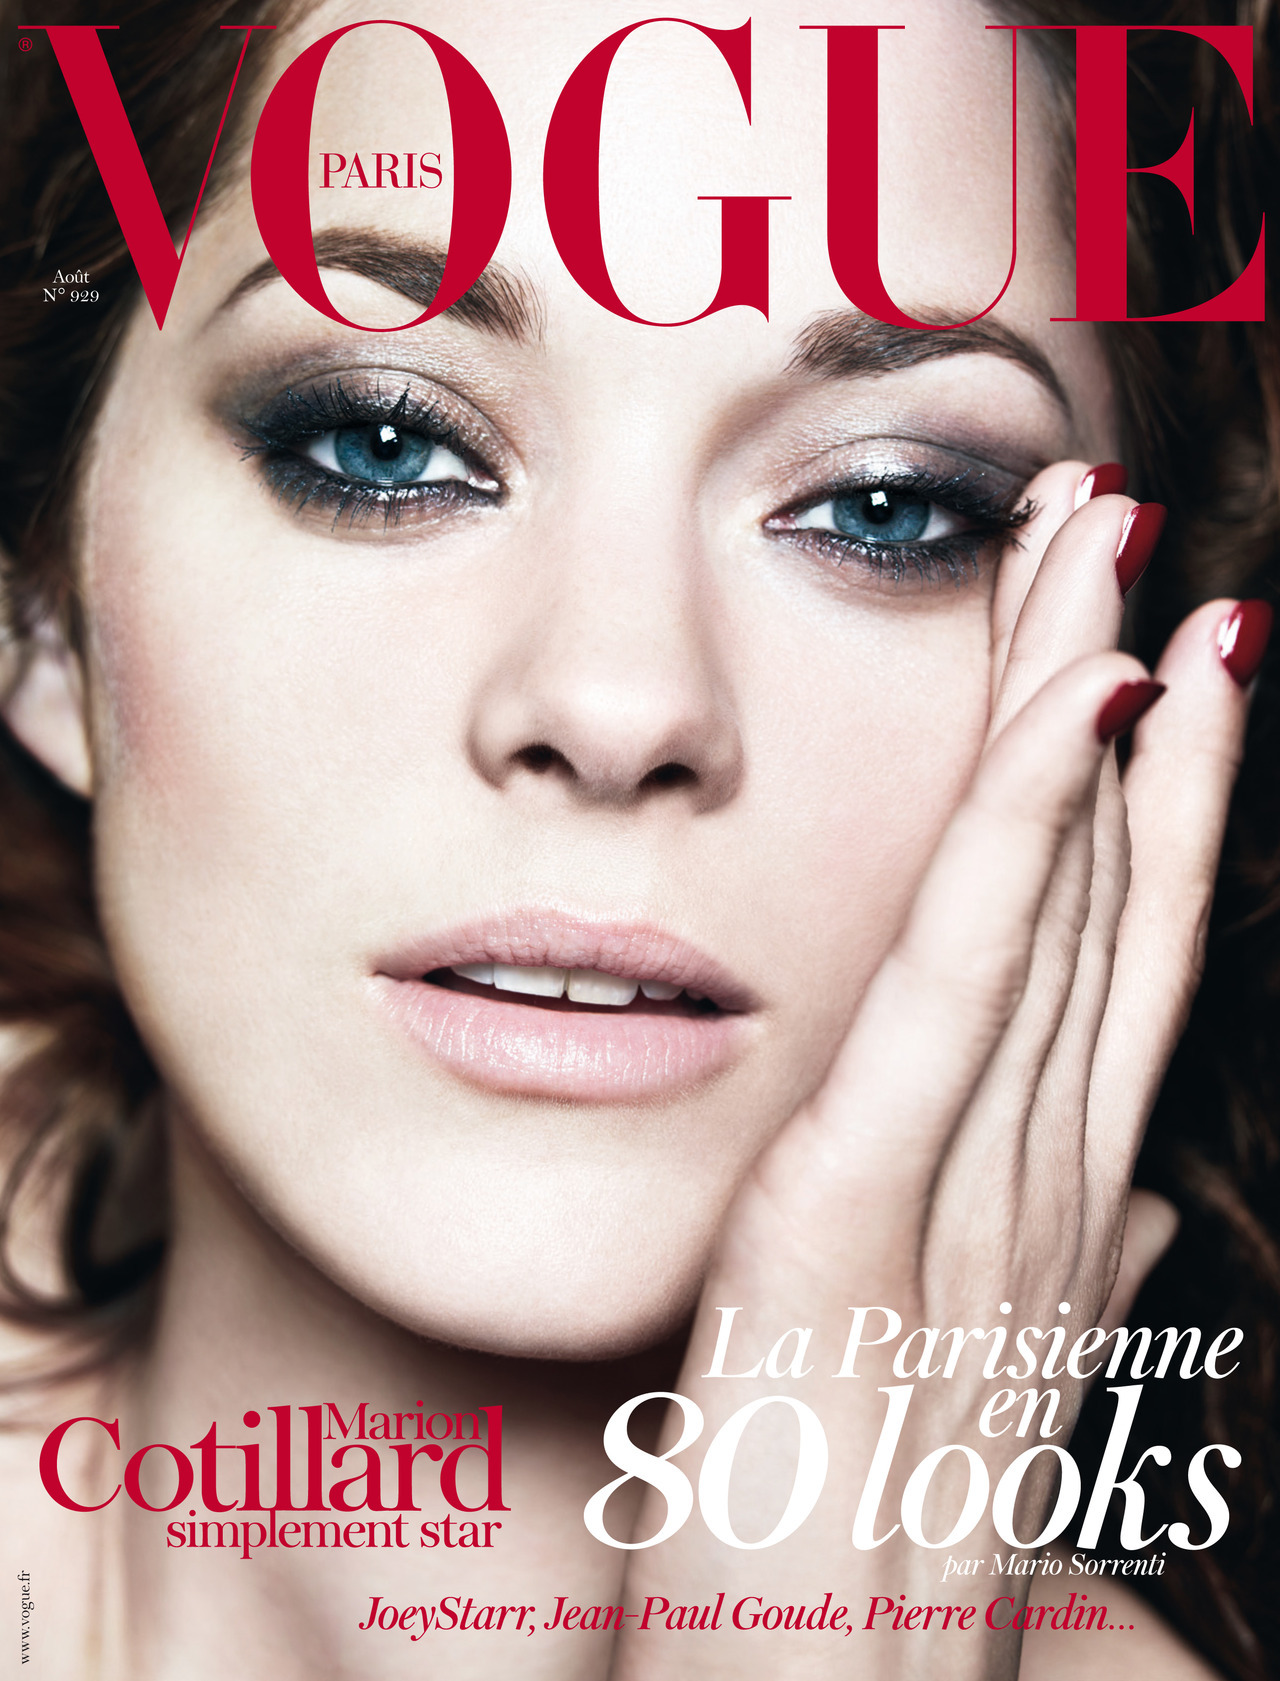 Vogue Paris August 2012: Marion Cotillard by Mario Sorrenti